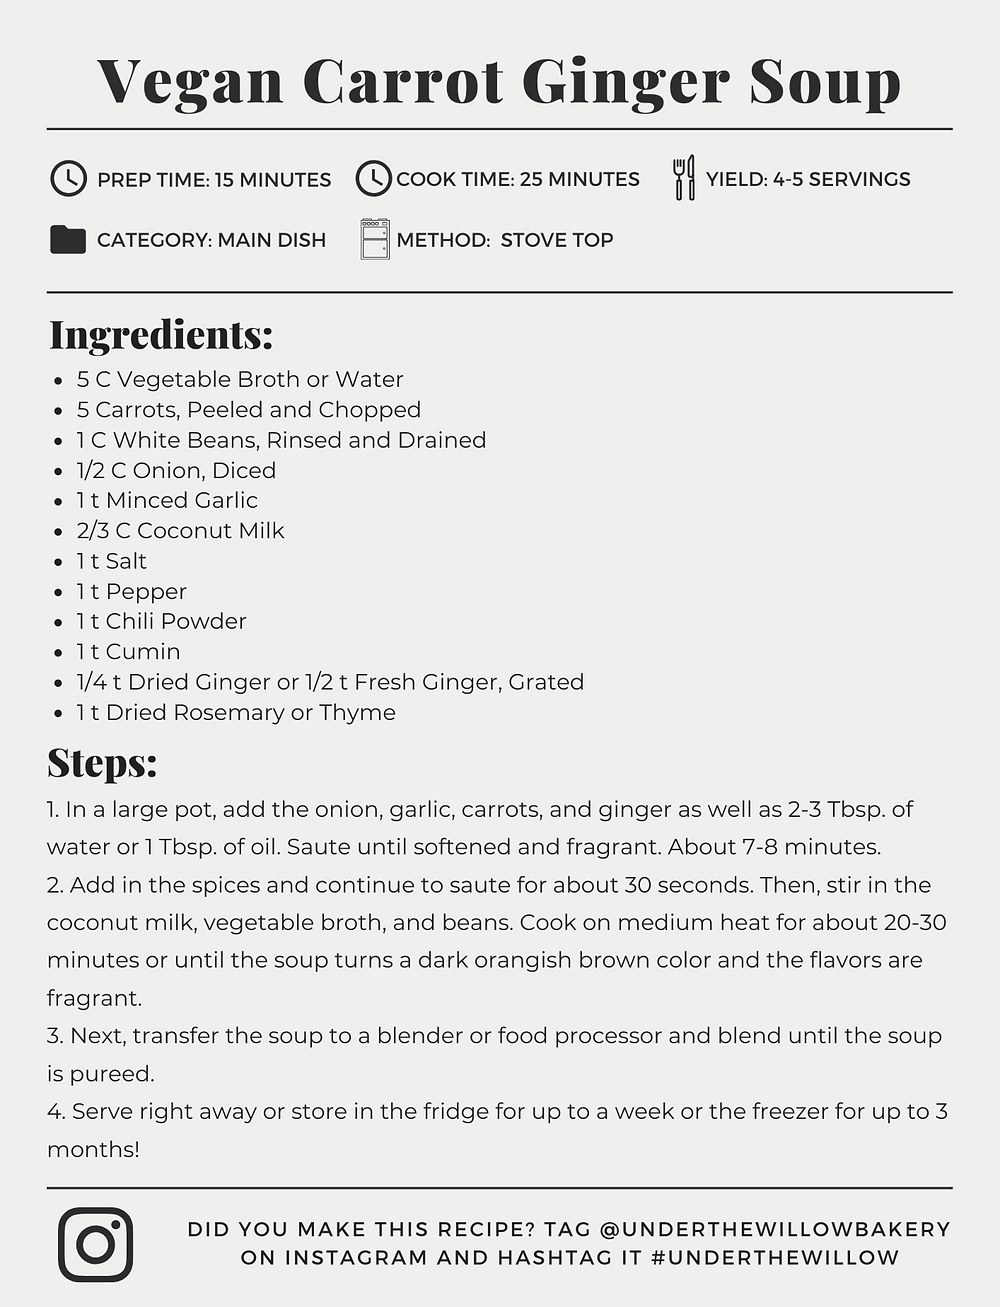 Vegan Carrot Ginger Soup Recipe Card